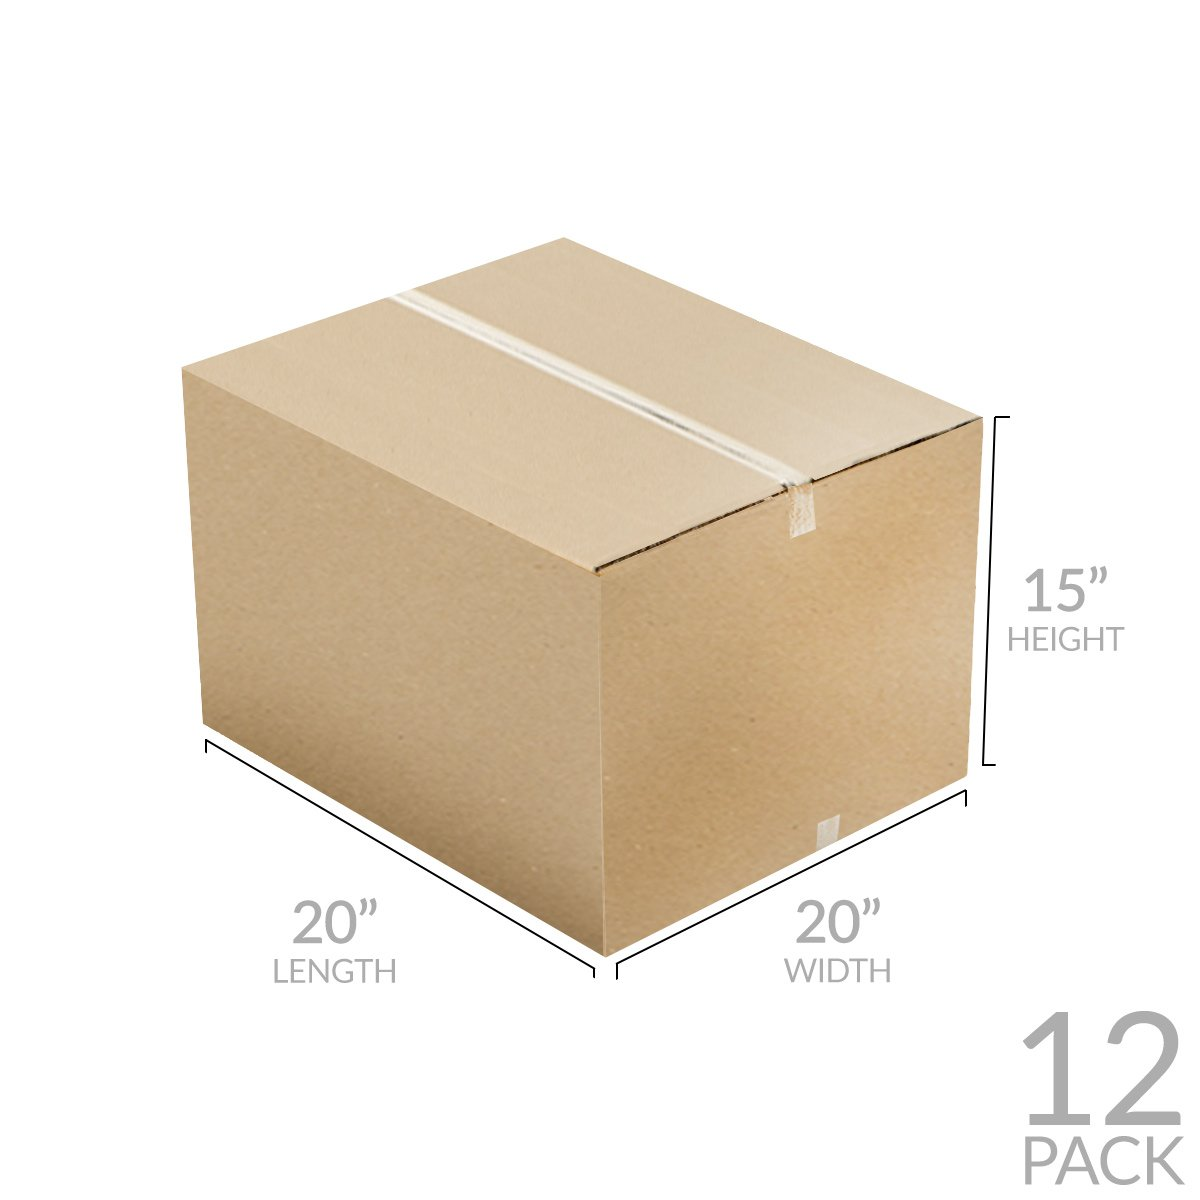 Uboxes Brand Box Bundles: (12 Pack) Large Moving Boxes 20''x20''x15''